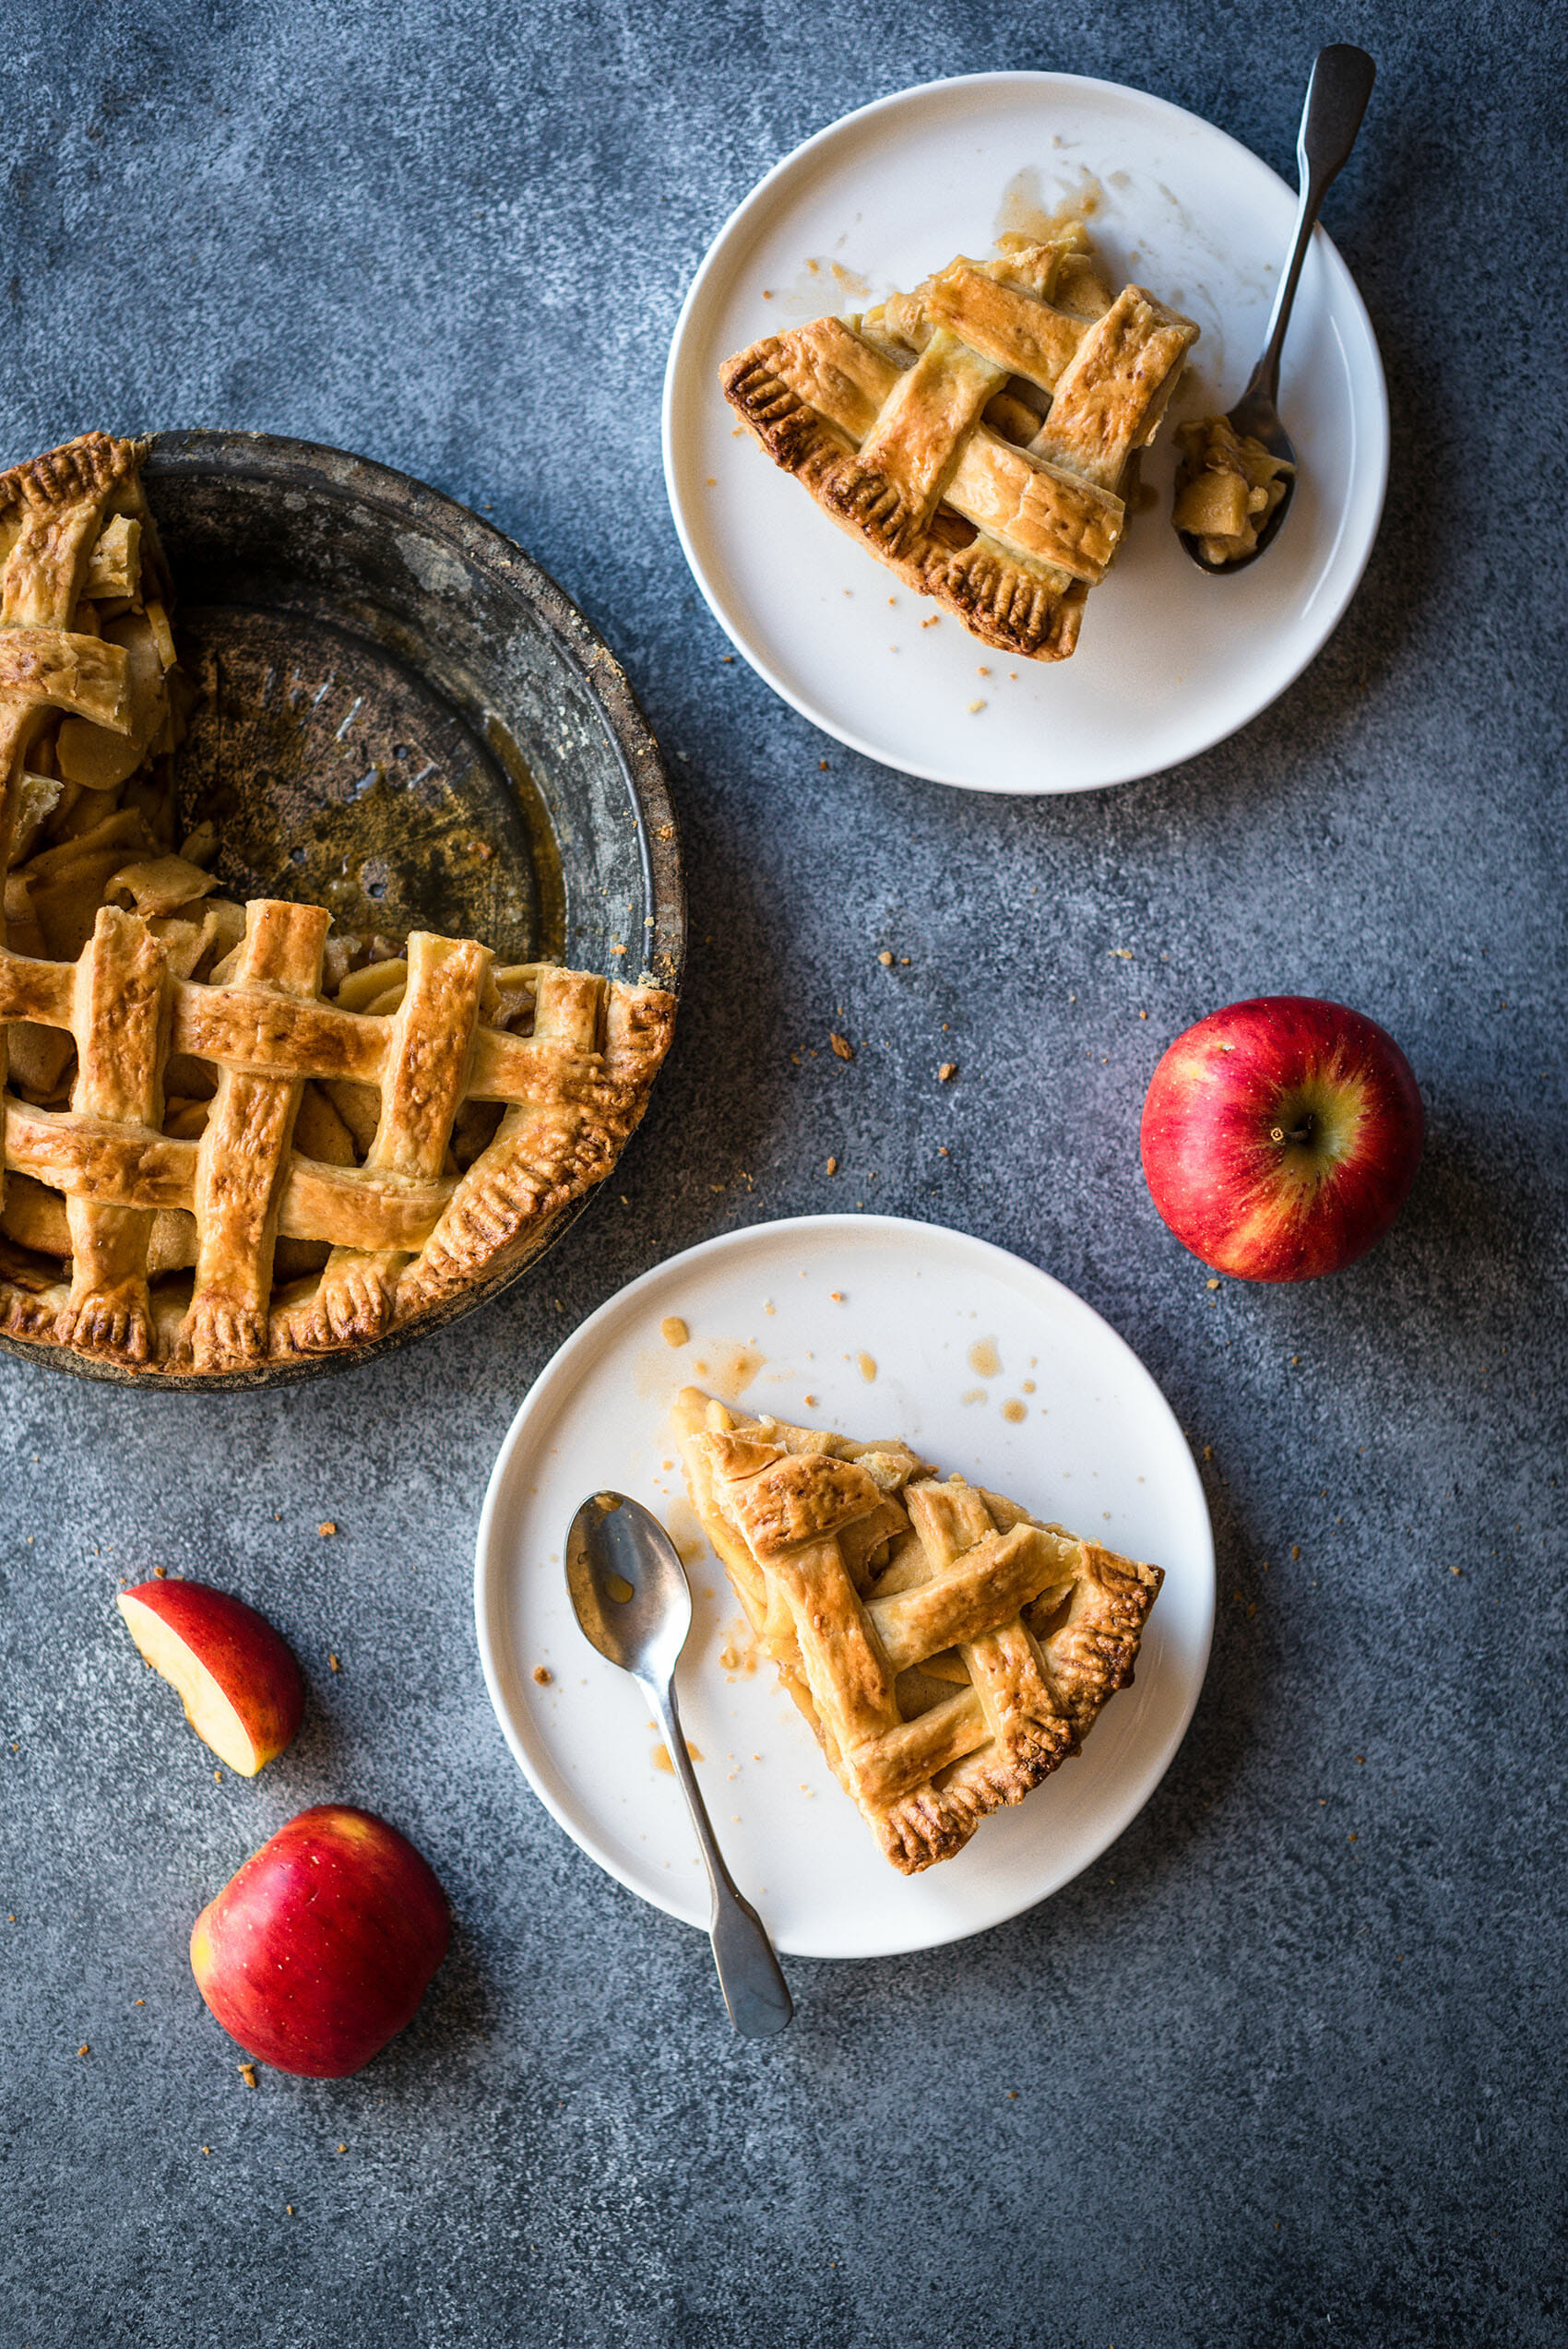 Apple pie - Tourte pomme cannelle - Lilie Bakery